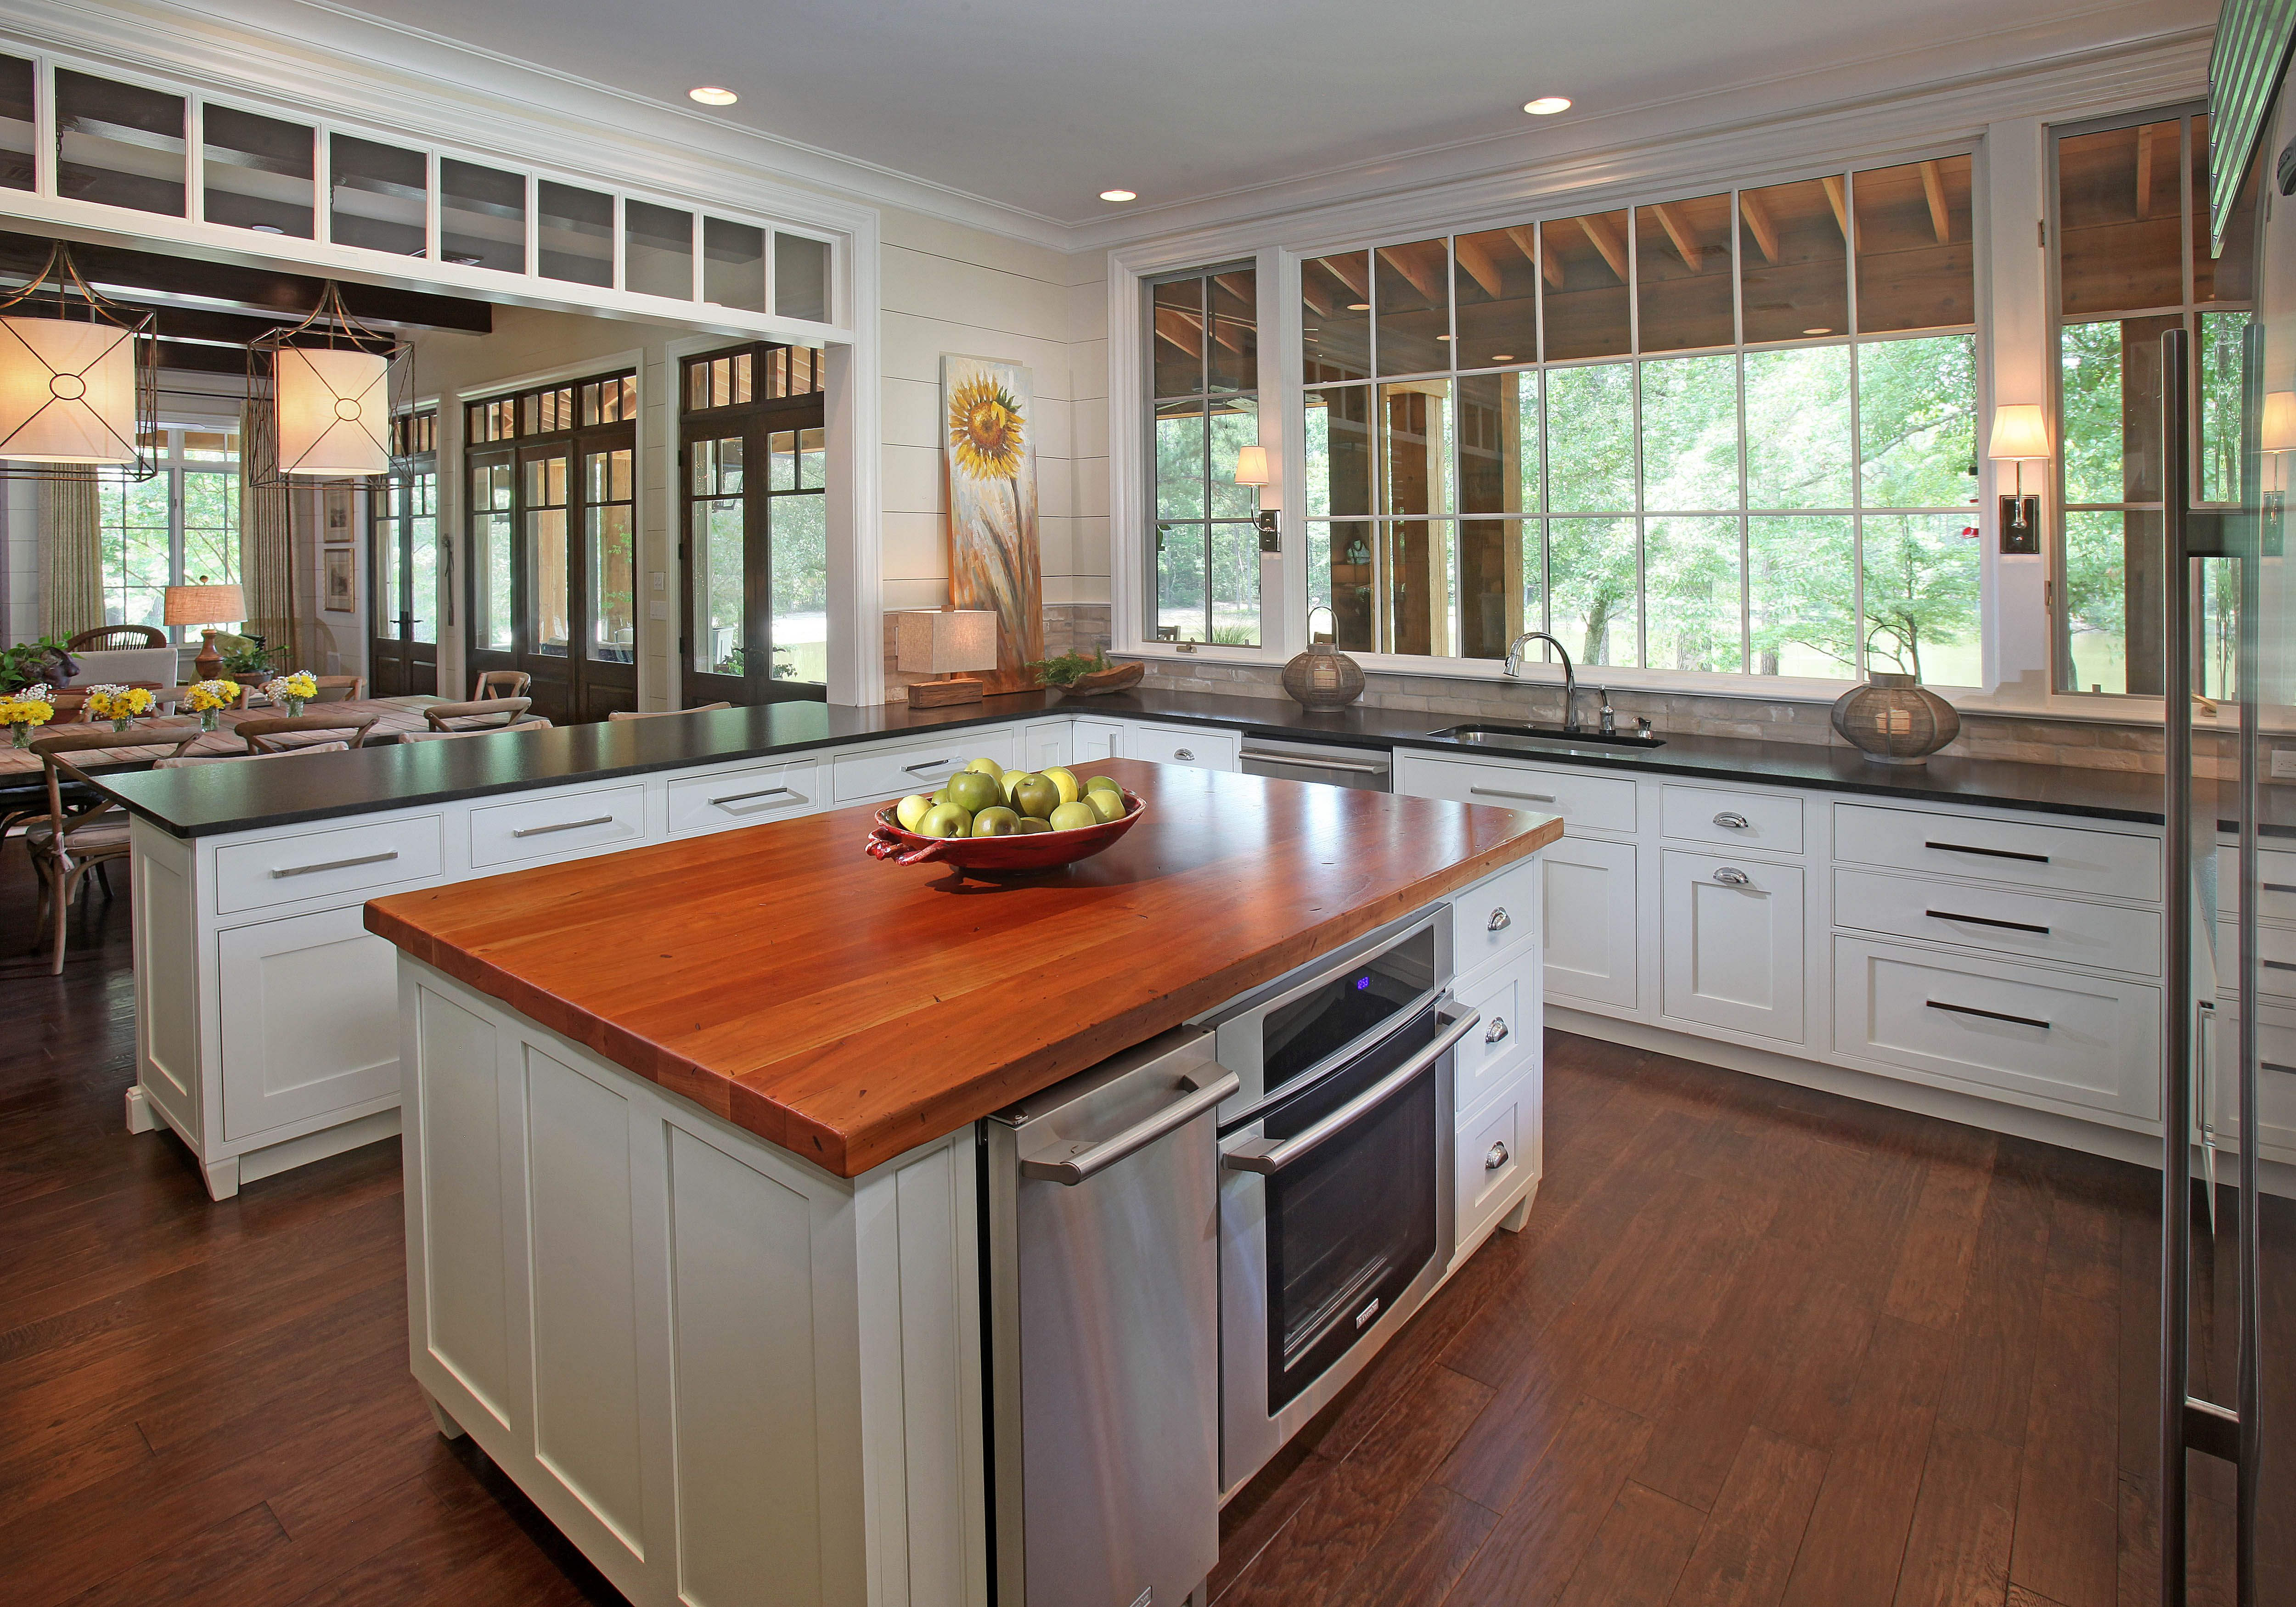 1000 Images Renovated Kitchen Ideas On. Kitchen Island Table Design Ideas. 767 Kitchen Onhouse Of Turquoise. Dining Room Fabulous All Cherry Wooden Kitchen Design Featuring L